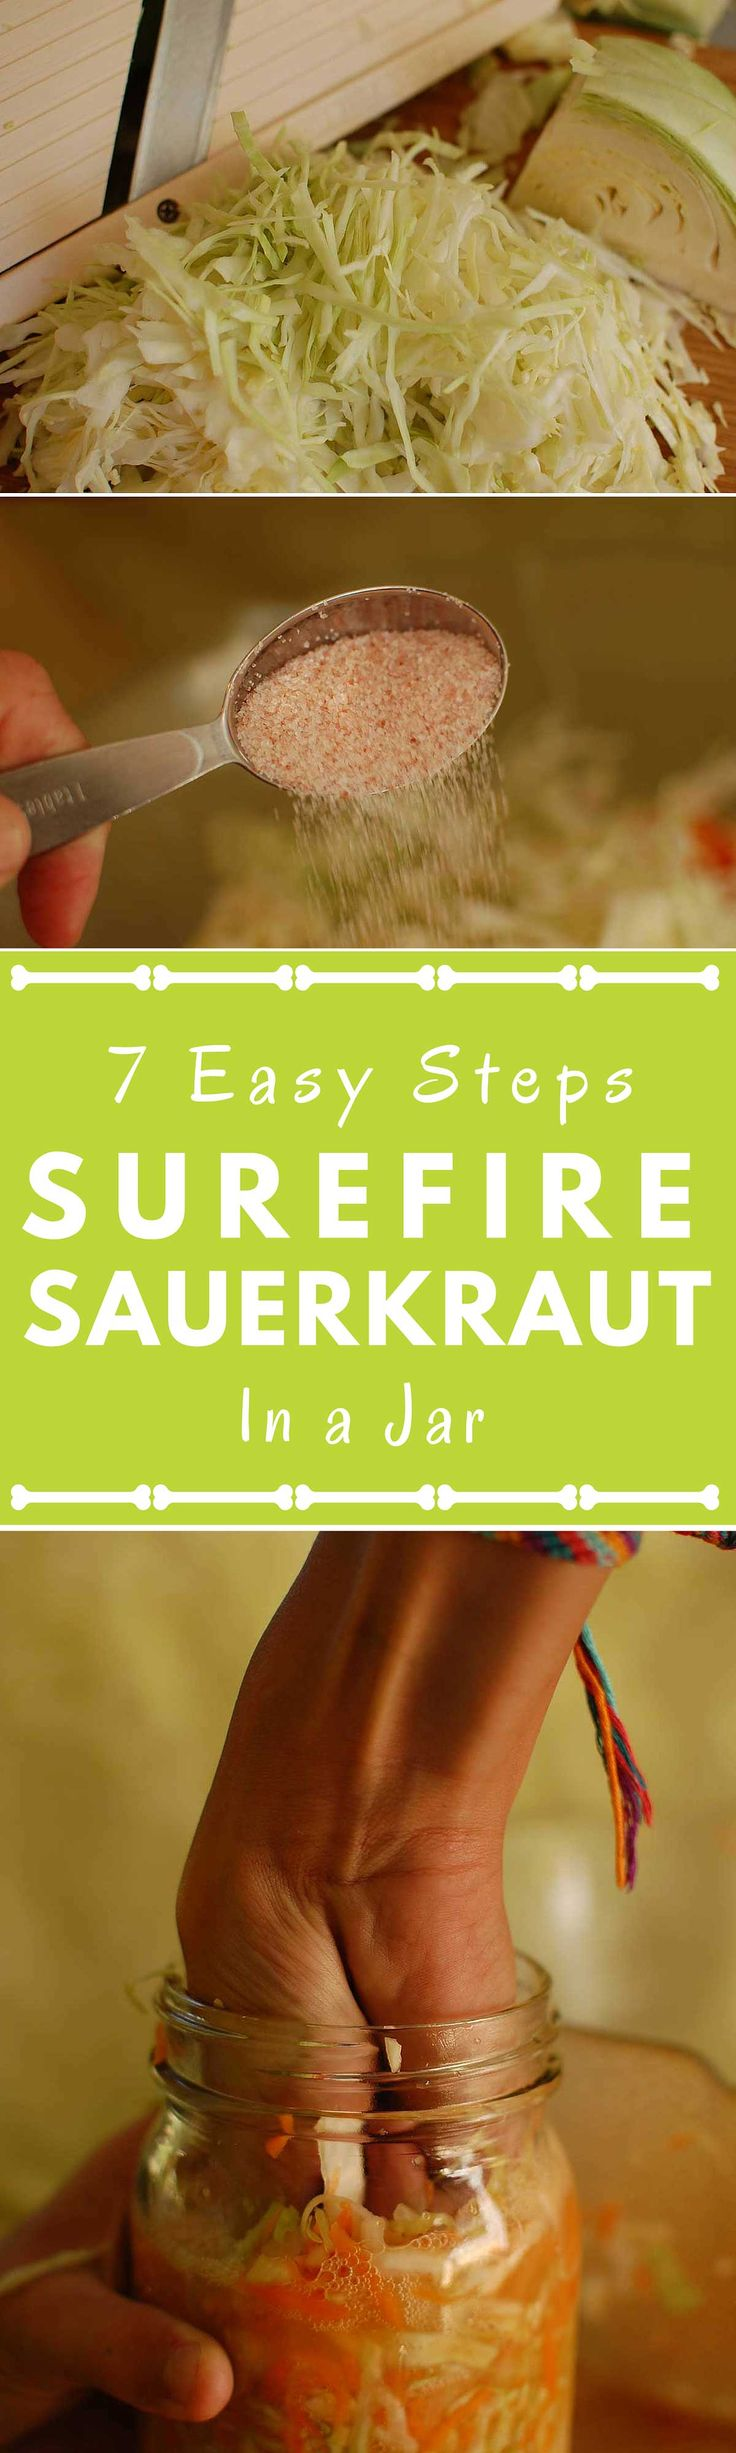 The SureFire Sauerkraut Method... In a Jar: 7 Easy Steps. Save money by making your own gut-friendly sauerkraut. Super-simple to make. Learn by making a small batch of sauerkraut in a 1-quart jar. Many tips and photos ensure success… the first time and every time! | makesauerkraut.com